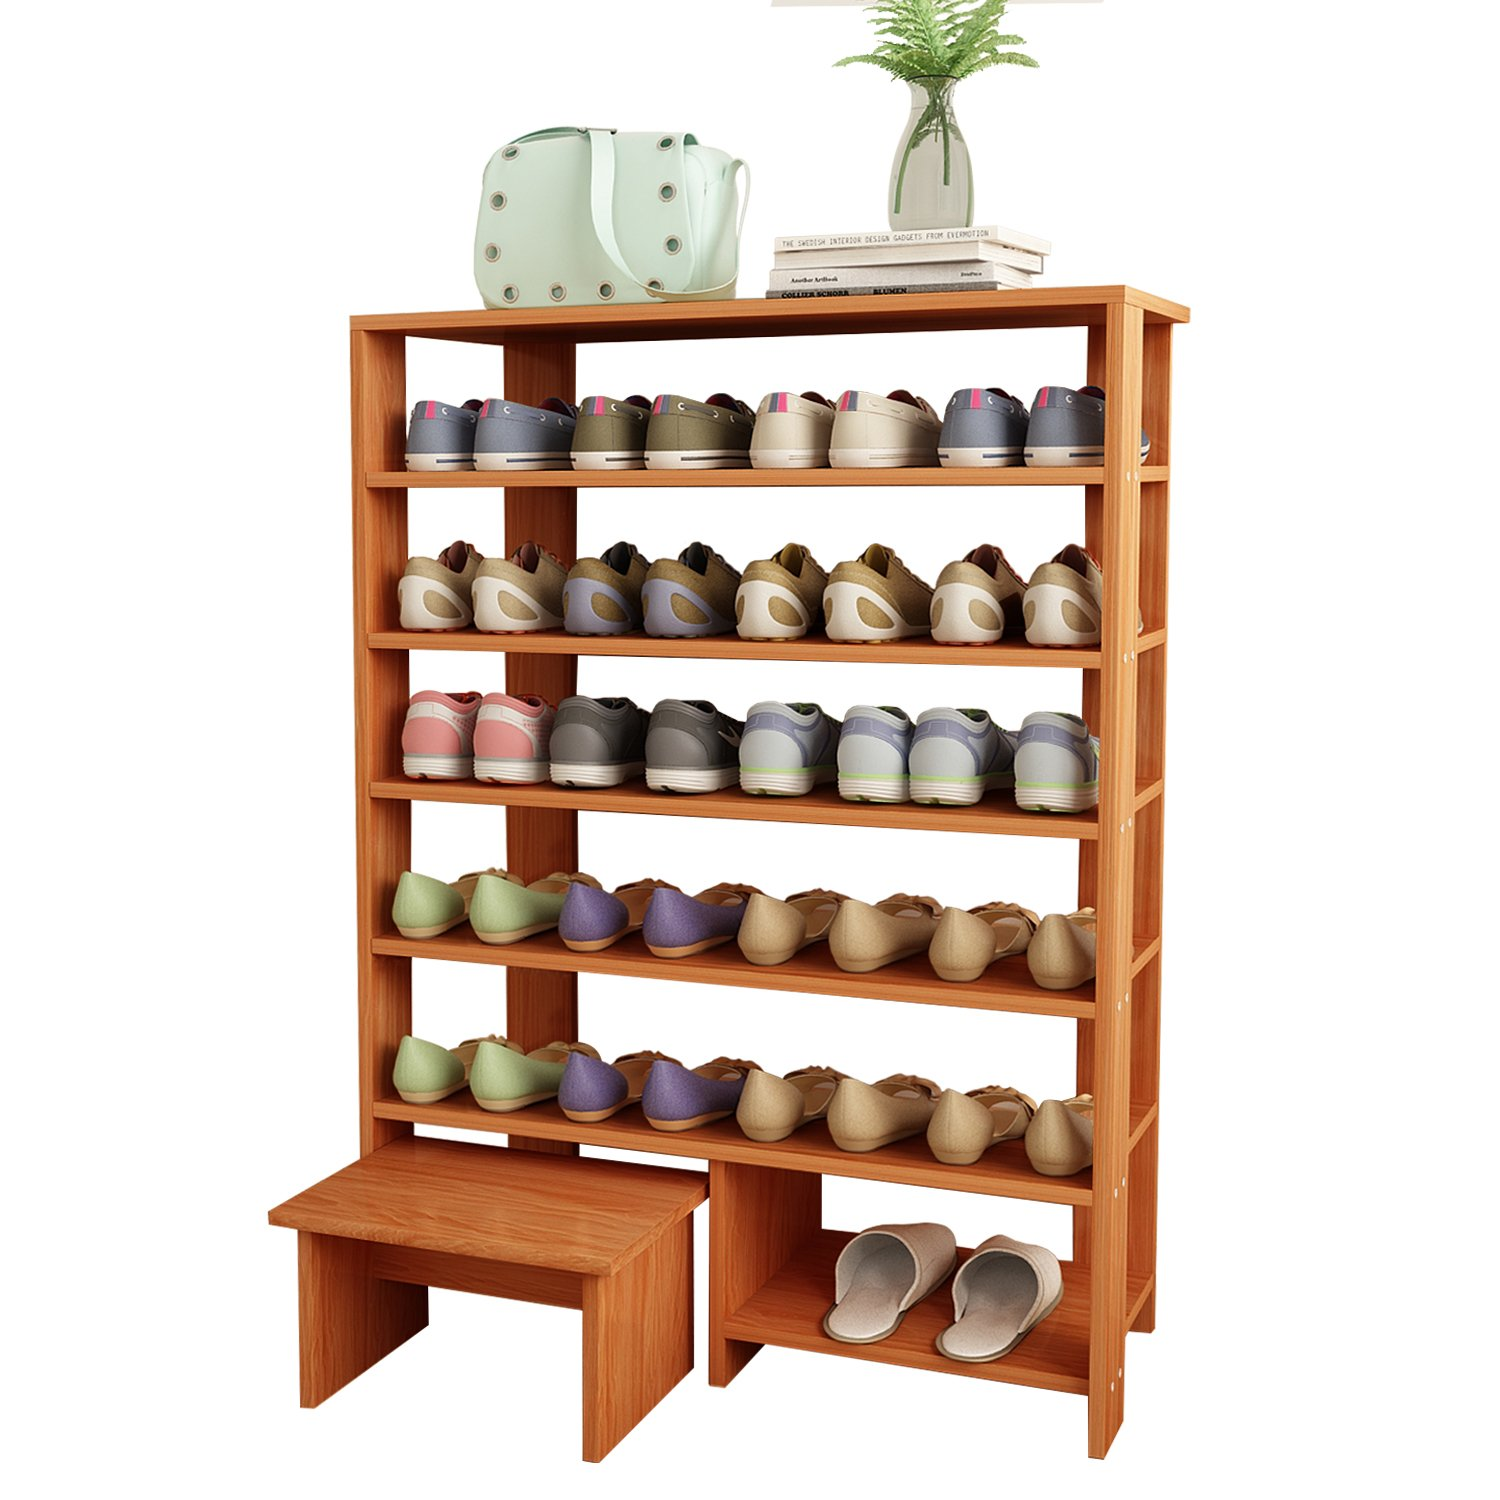 Jerry & Maggie - 6 Tier Wood MDF Solid Shelf Shoe Rack with One Footstool/Shoe Storage Shelves Free Standing Flat Shoe Racks Classic Style -100% Multi Function Shelf Organizer - Natural Wood Tone